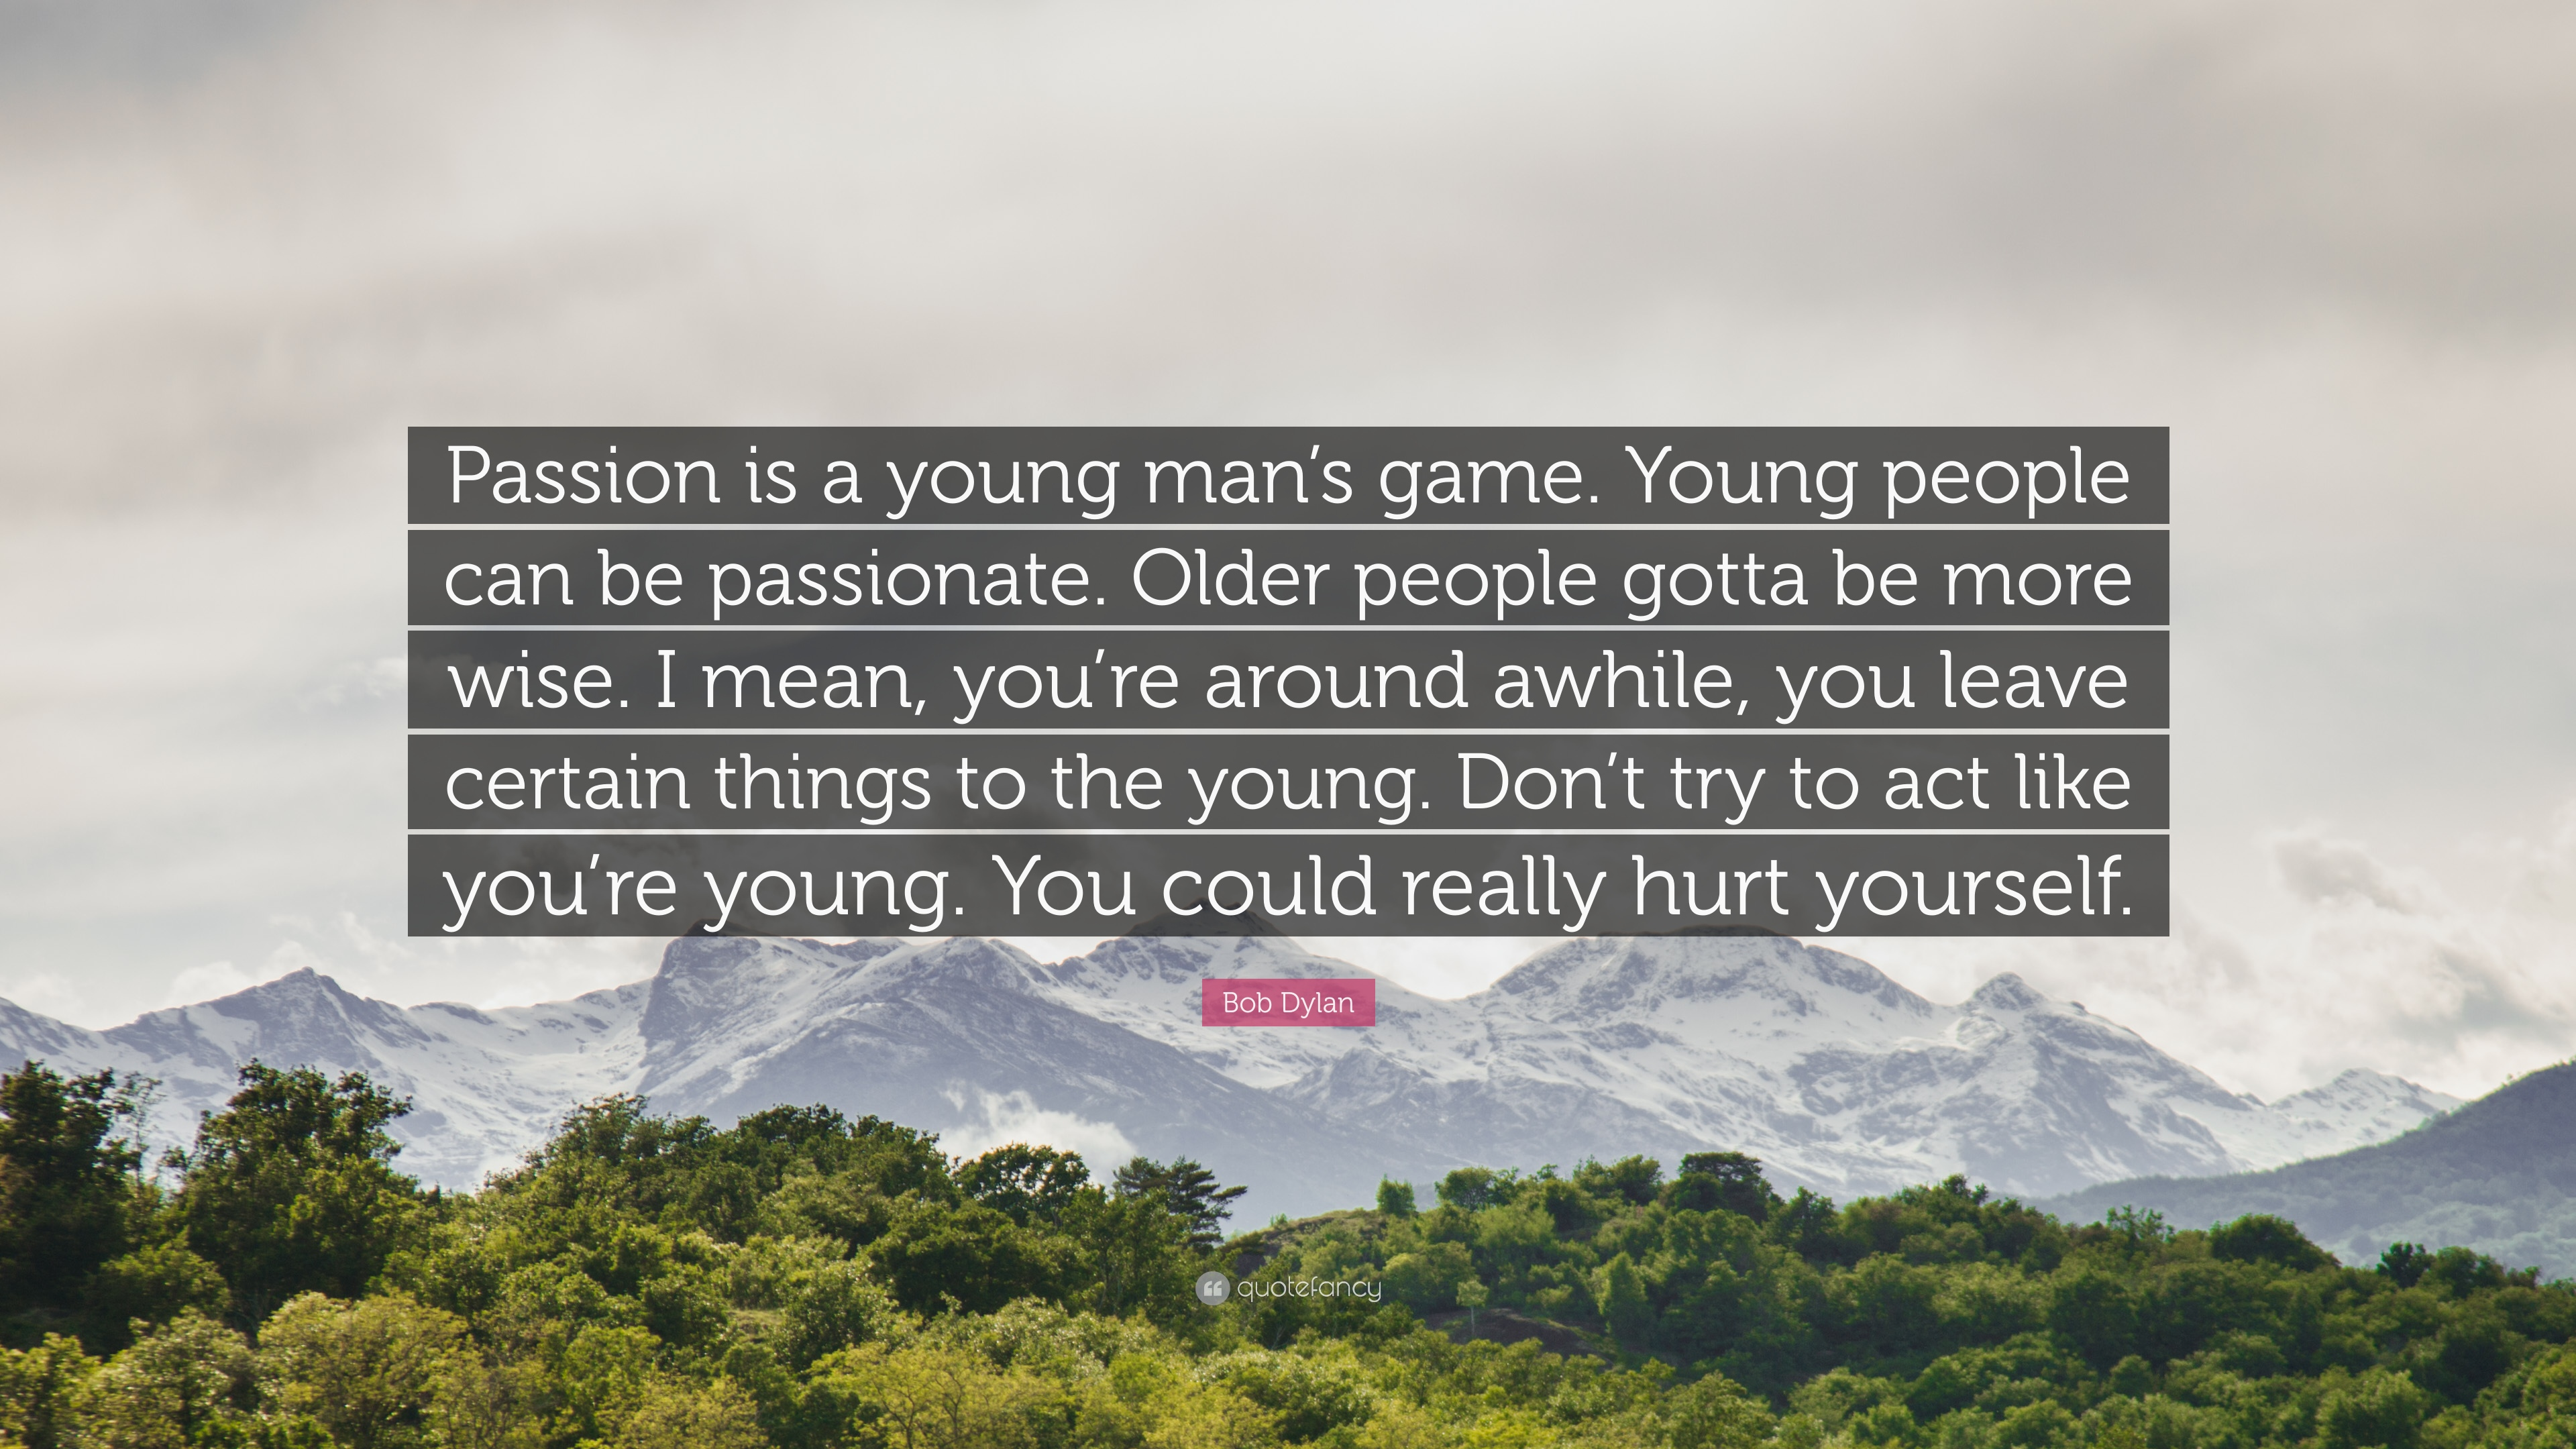 bob dylan quote passion is a young man s game young people can bob dylan quote passion is a young man s game young people can be